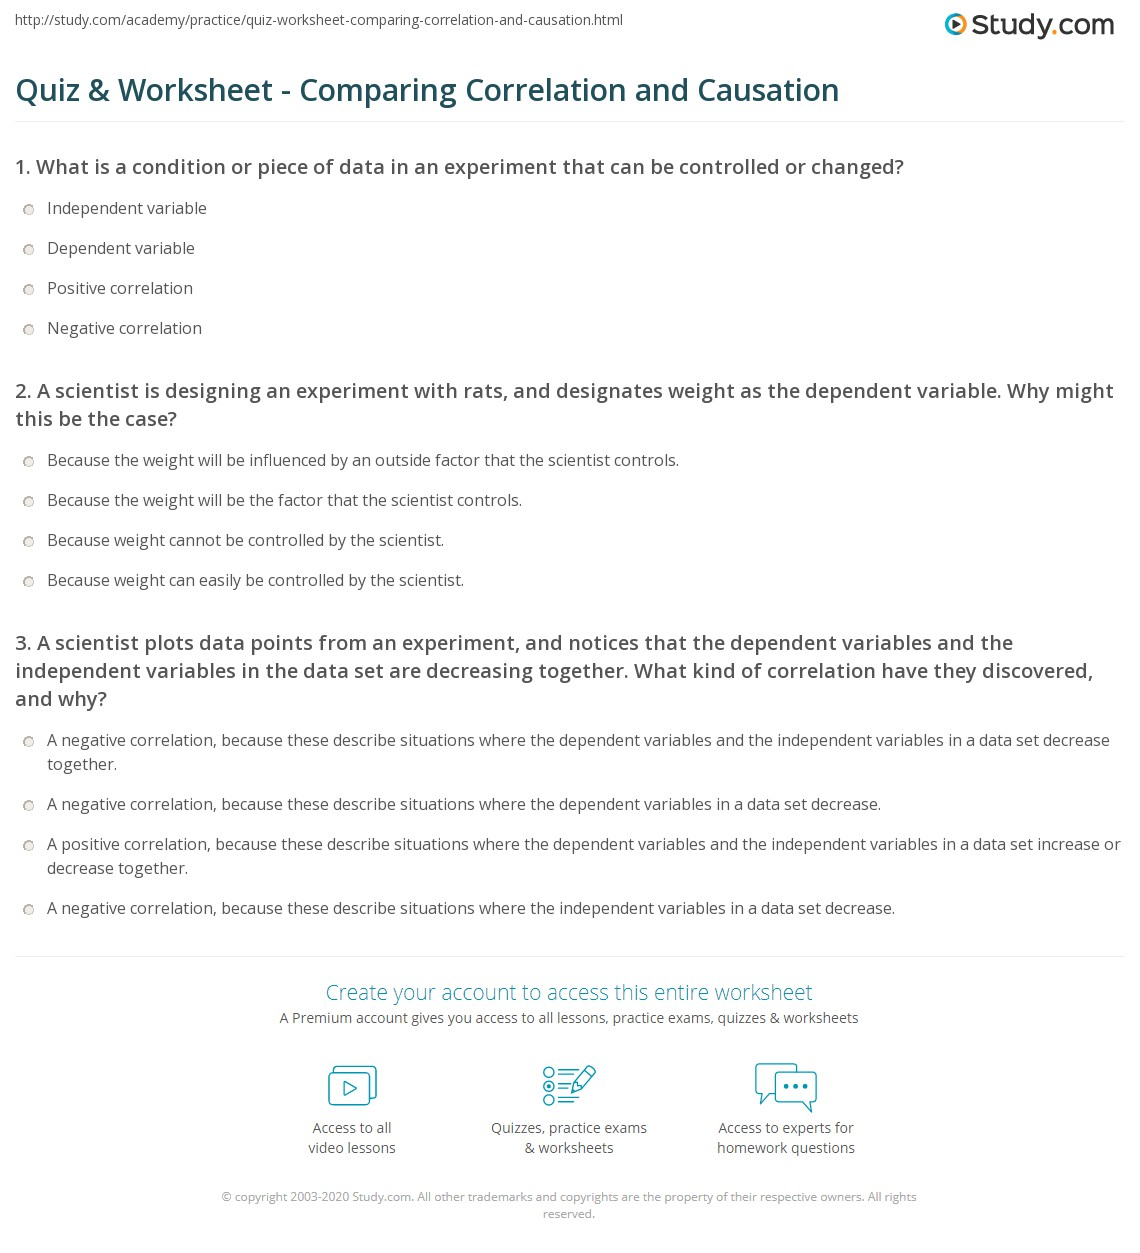 Aldiablosus  Pleasant Quiz Amp Worksheet  Comparing Correlation And Causation  Studycom With Exquisite Print Correlation Vs Causation Differences Amp Definition Worksheet With Astonishing Bible Study Worksheets Also Stem And Leaf Plot Worksheets In Addition Place Value Worksheets Th Grade And Reading Worksheets For Nd Grade As Well As Money Worksheets For Nd Grade Additionally Which Law Worksheet From Studycom With Aldiablosus  Exquisite Quiz Amp Worksheet  Comparing Correlation And Causation  Studycom With Astonishing Print Correlation Vs Causation Differences Amp Definition Worksheet And Pleasant Bible Study Worksheets Also Stem And Leaf Plot Worksheets In Addition Place Value Worksheets Th Grade From Studycom